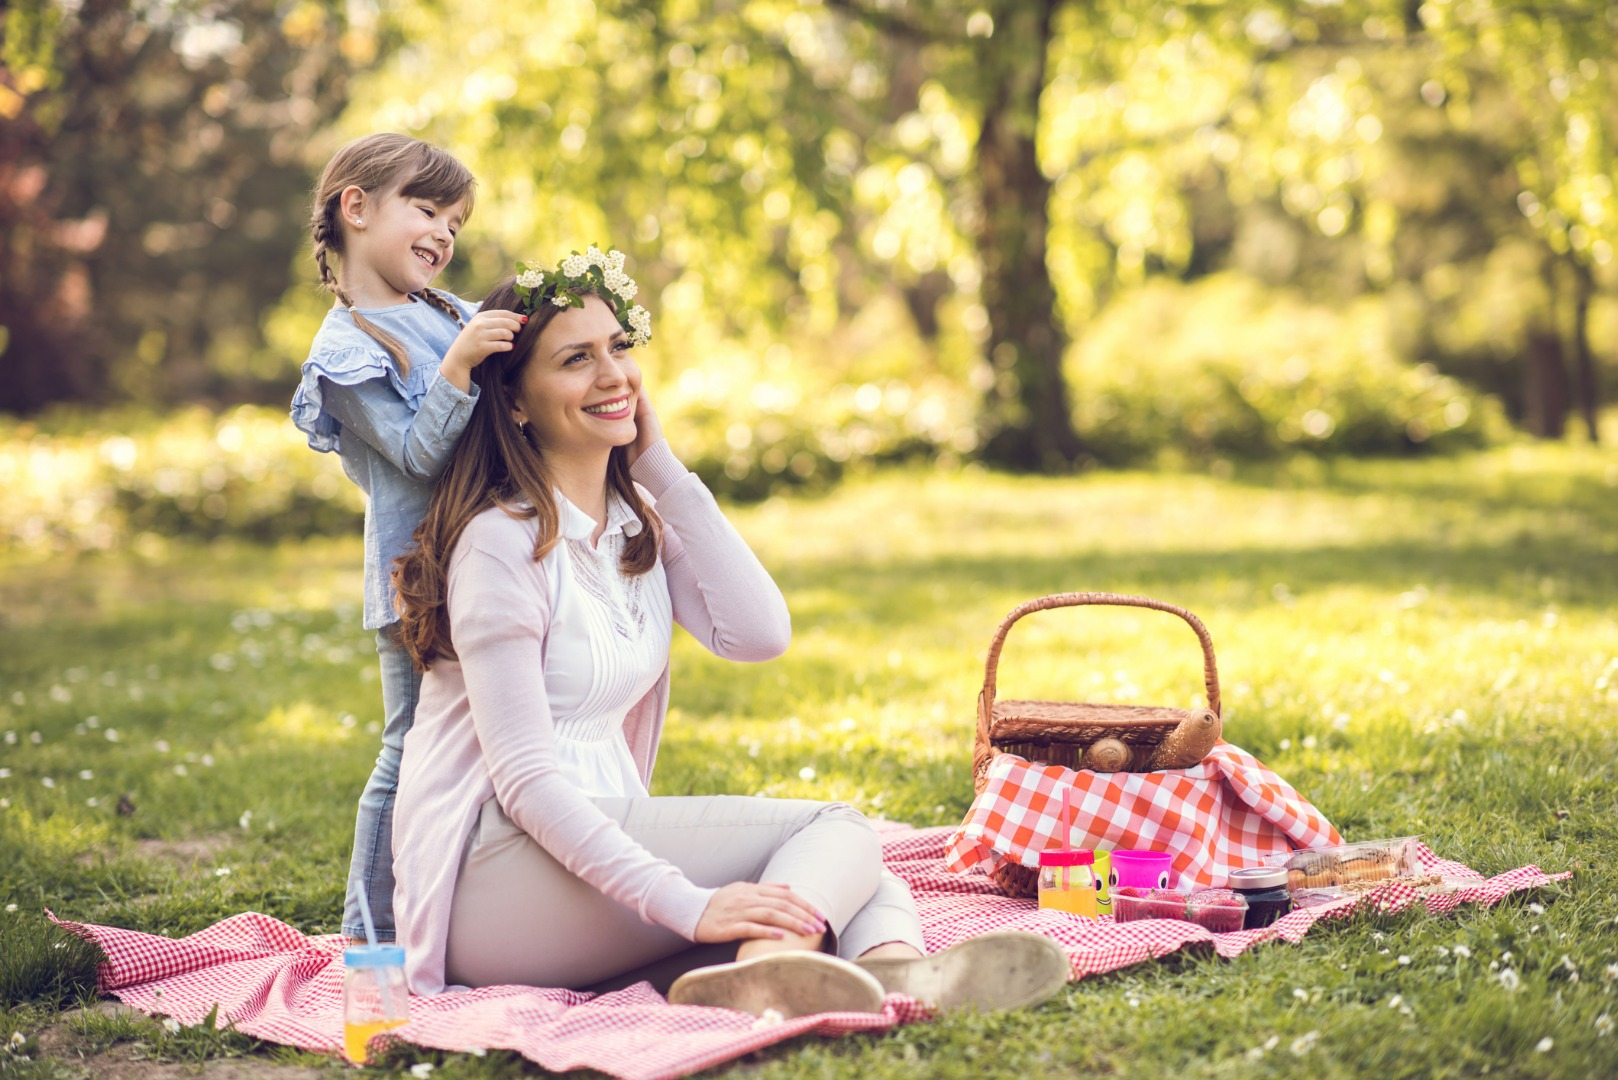 Picnic with the baby: step by step instructions